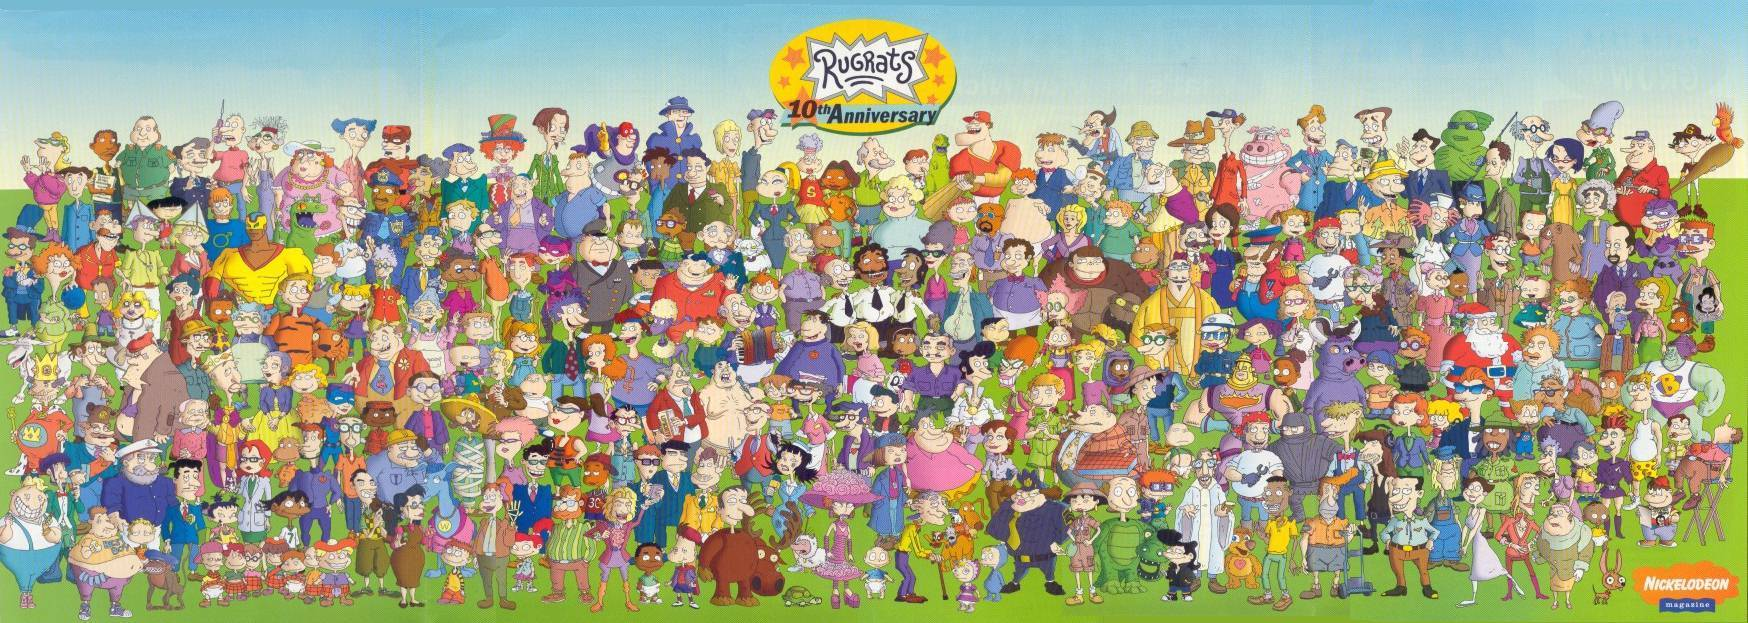 List of Rugrats characters   Tommy and the Rugrats Wiki ...